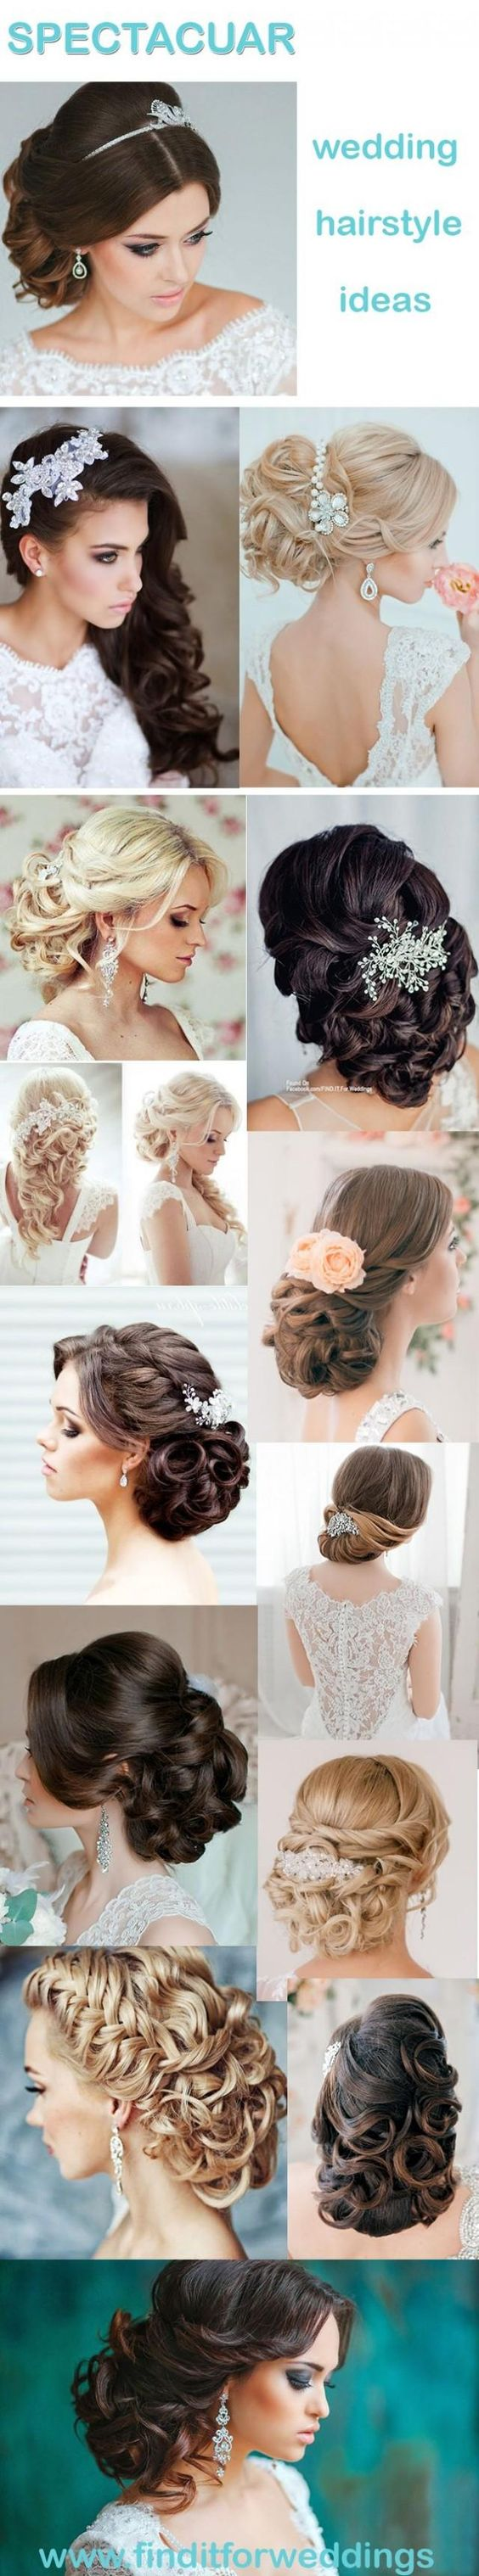 Wedding hairstyles that include updos and long flowing curls. Choose your hairstyle that suits your wedding theme and your personality